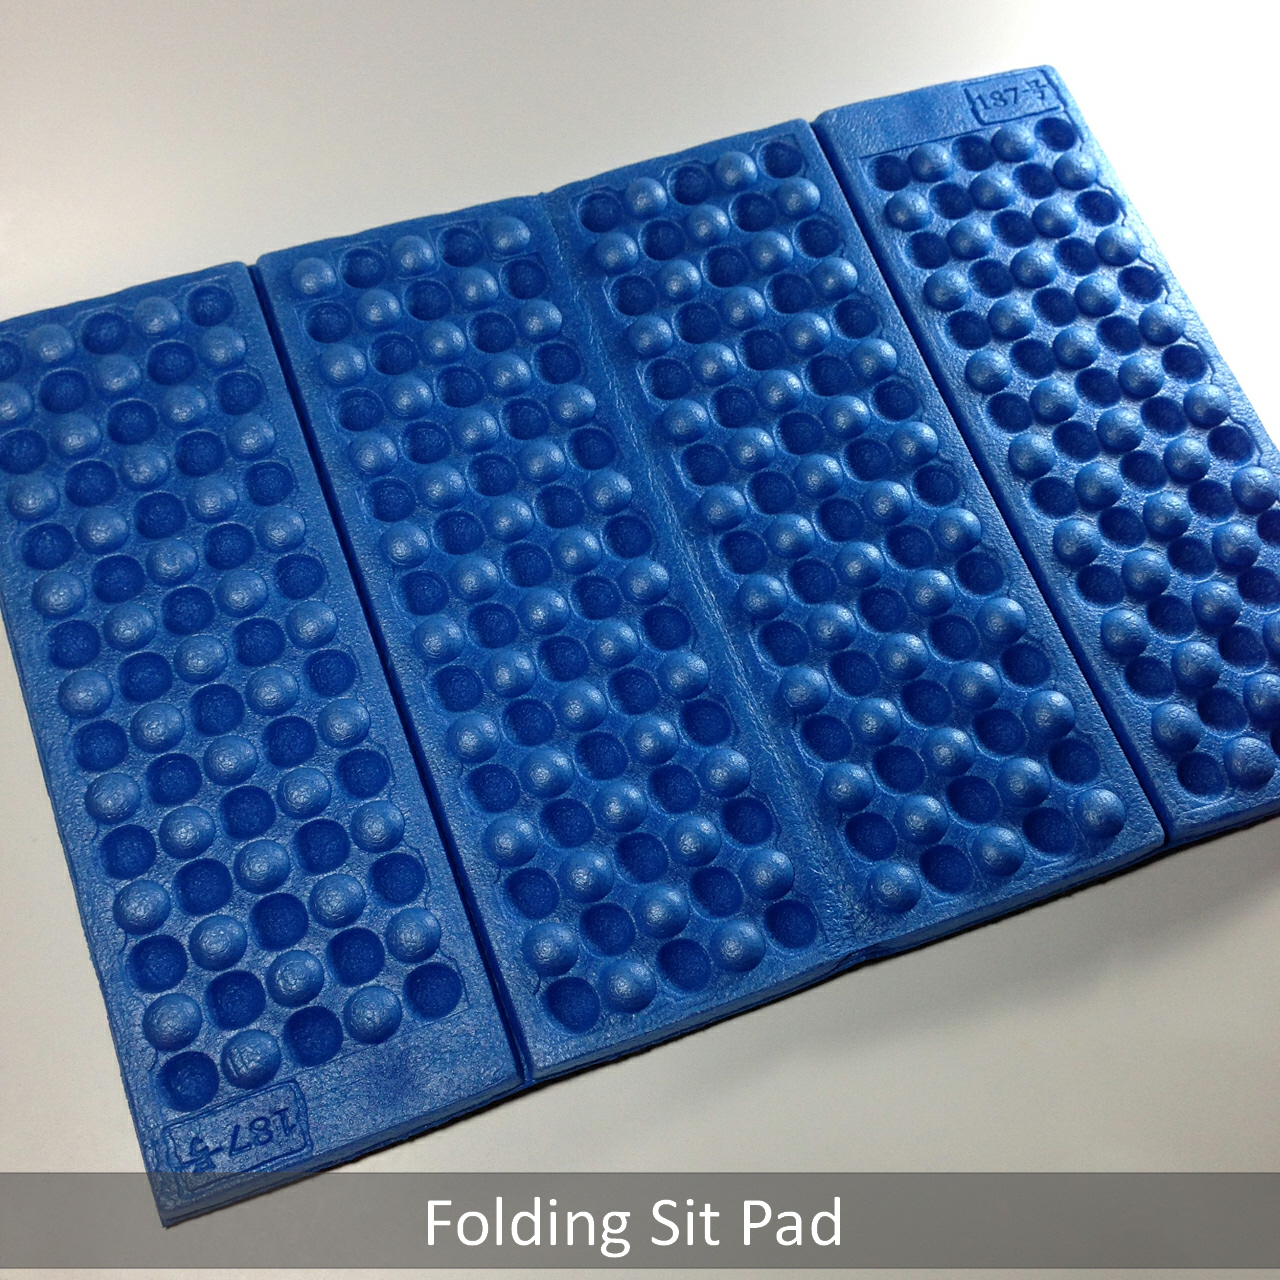 sit-pad-unfolded-text.jpg